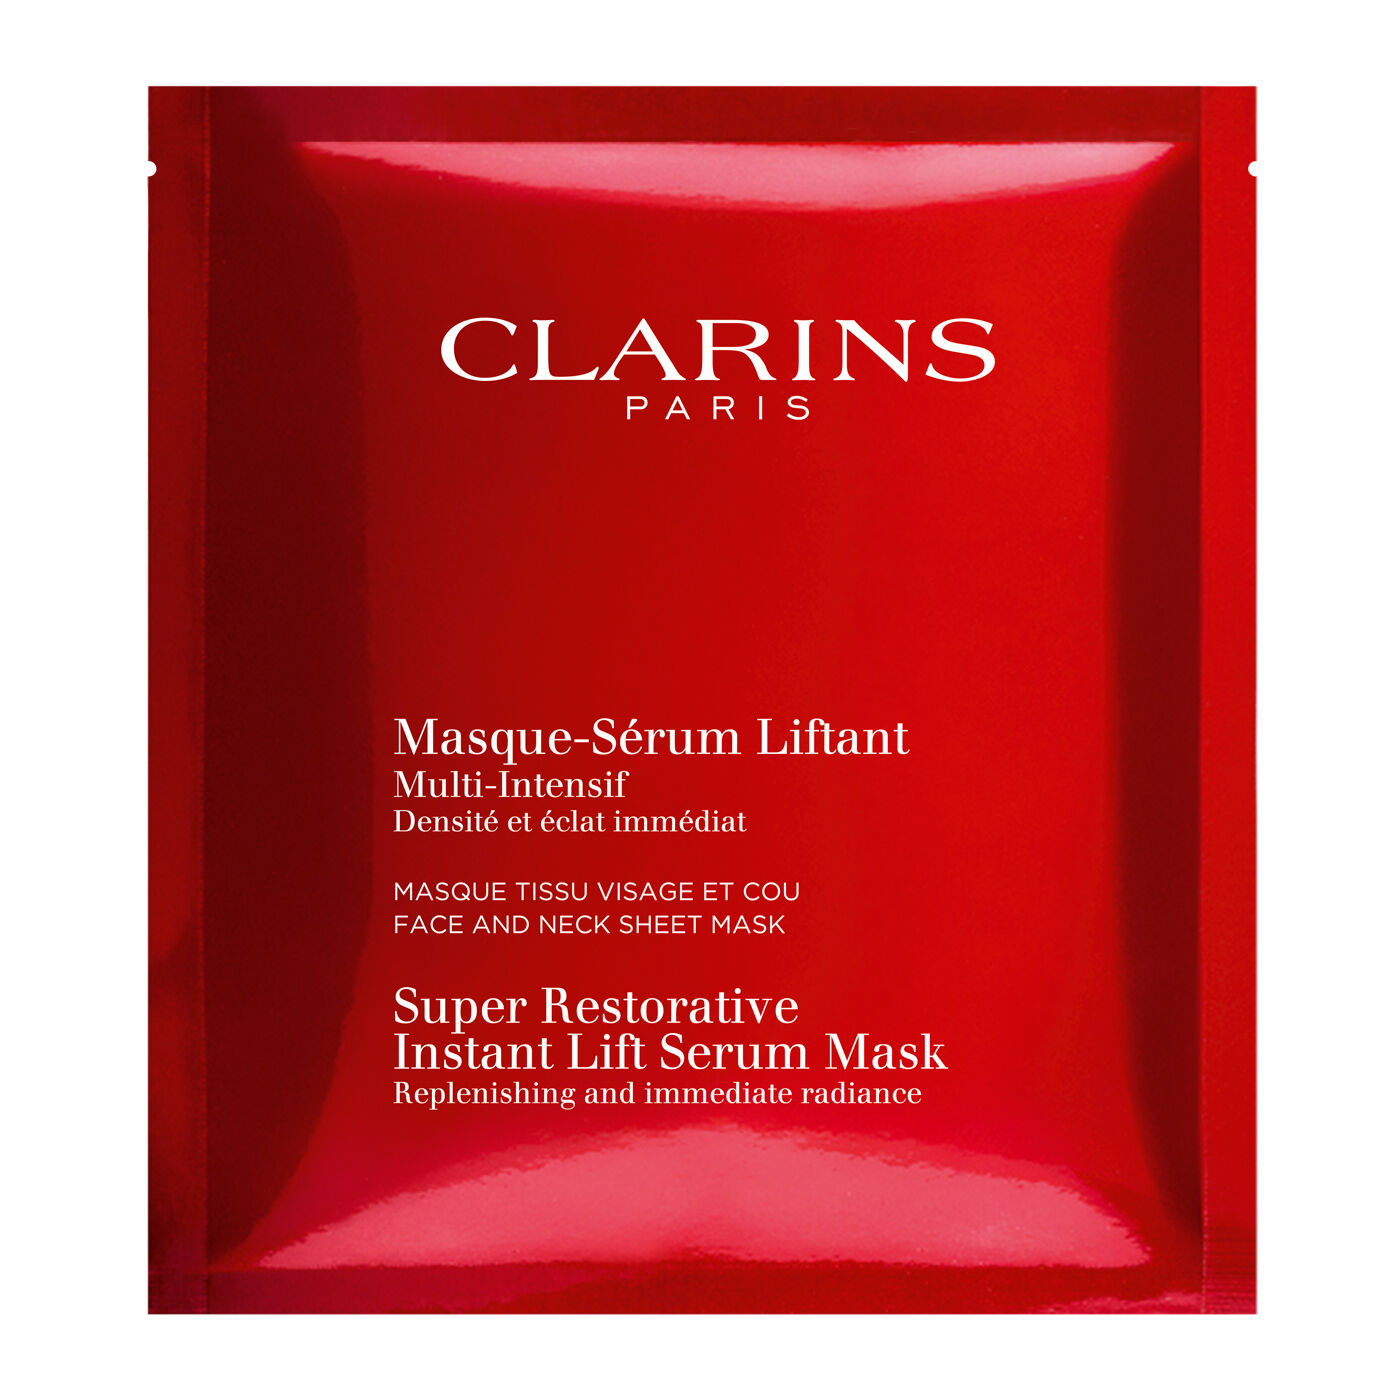 Multi-Intensive Masque-Sérum Liftant Anti-Age Vliesmaske